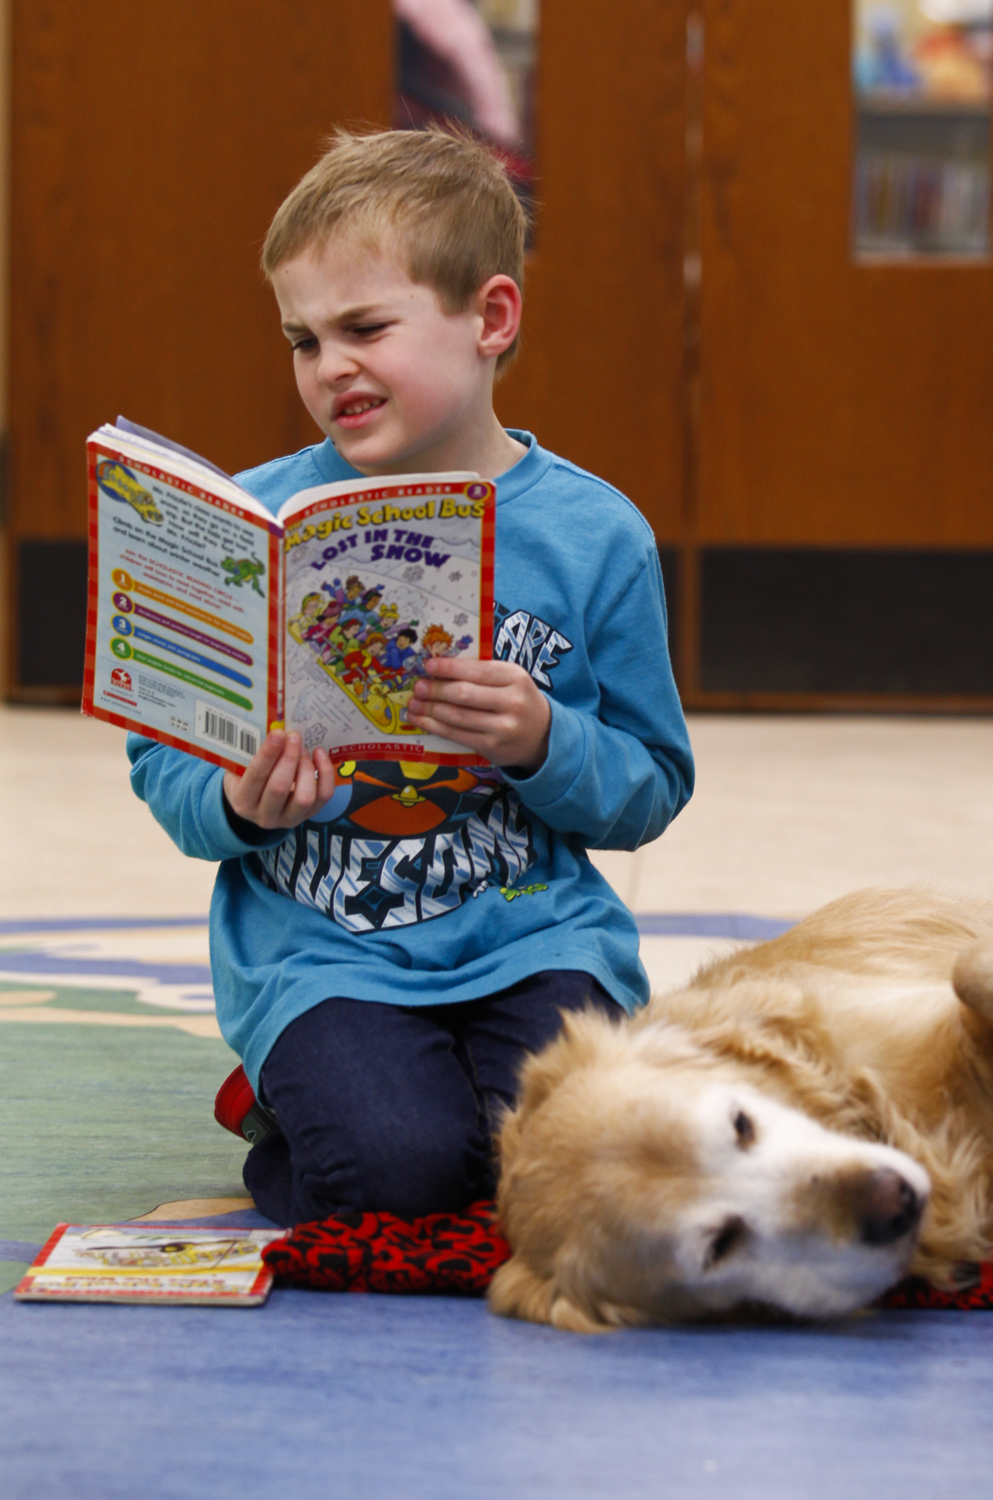 Trey McGonnell, 7 of Crestwood, reads to Doc during the PAWs to Read Program at the Oldham County Library. The program allows children to read aloud to a therapy dog to help improve their reading skills. Doc is one of six volunteer dogs that the program utilizes.